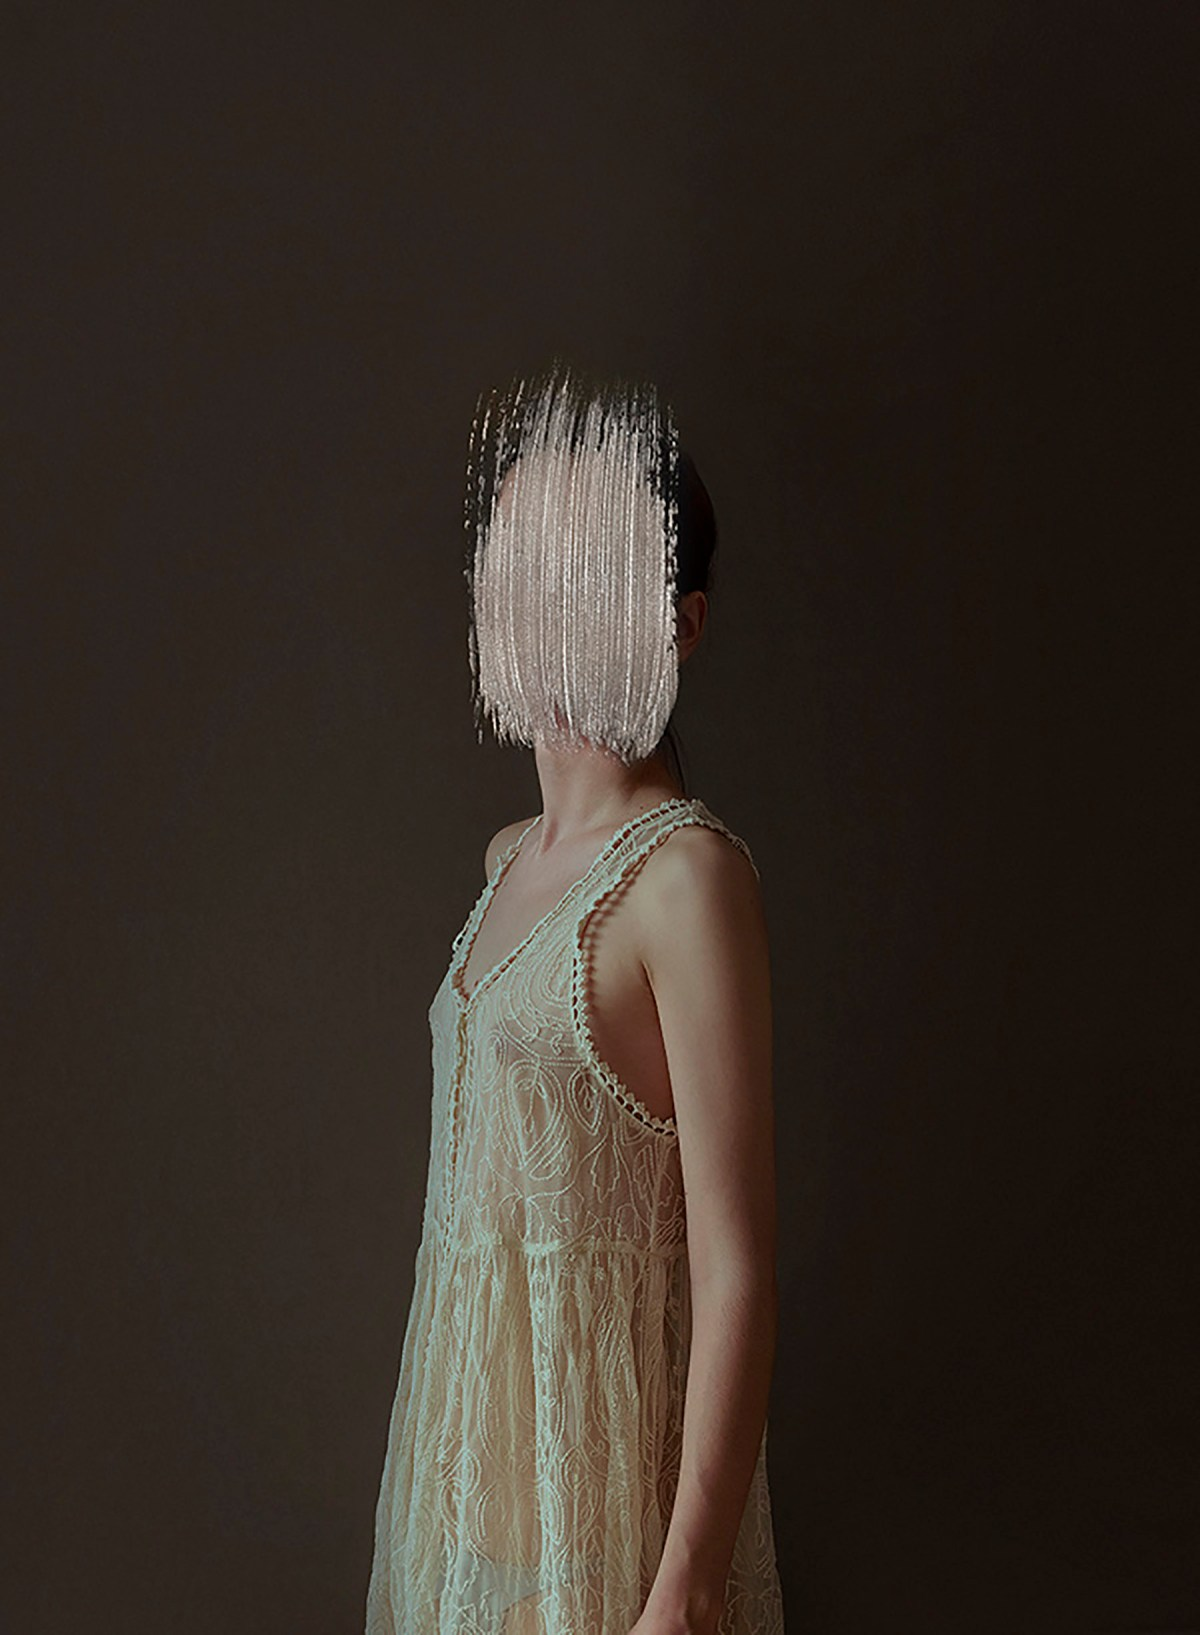 ignant-photography-andrea-torres-balaguer-the-unknown-07